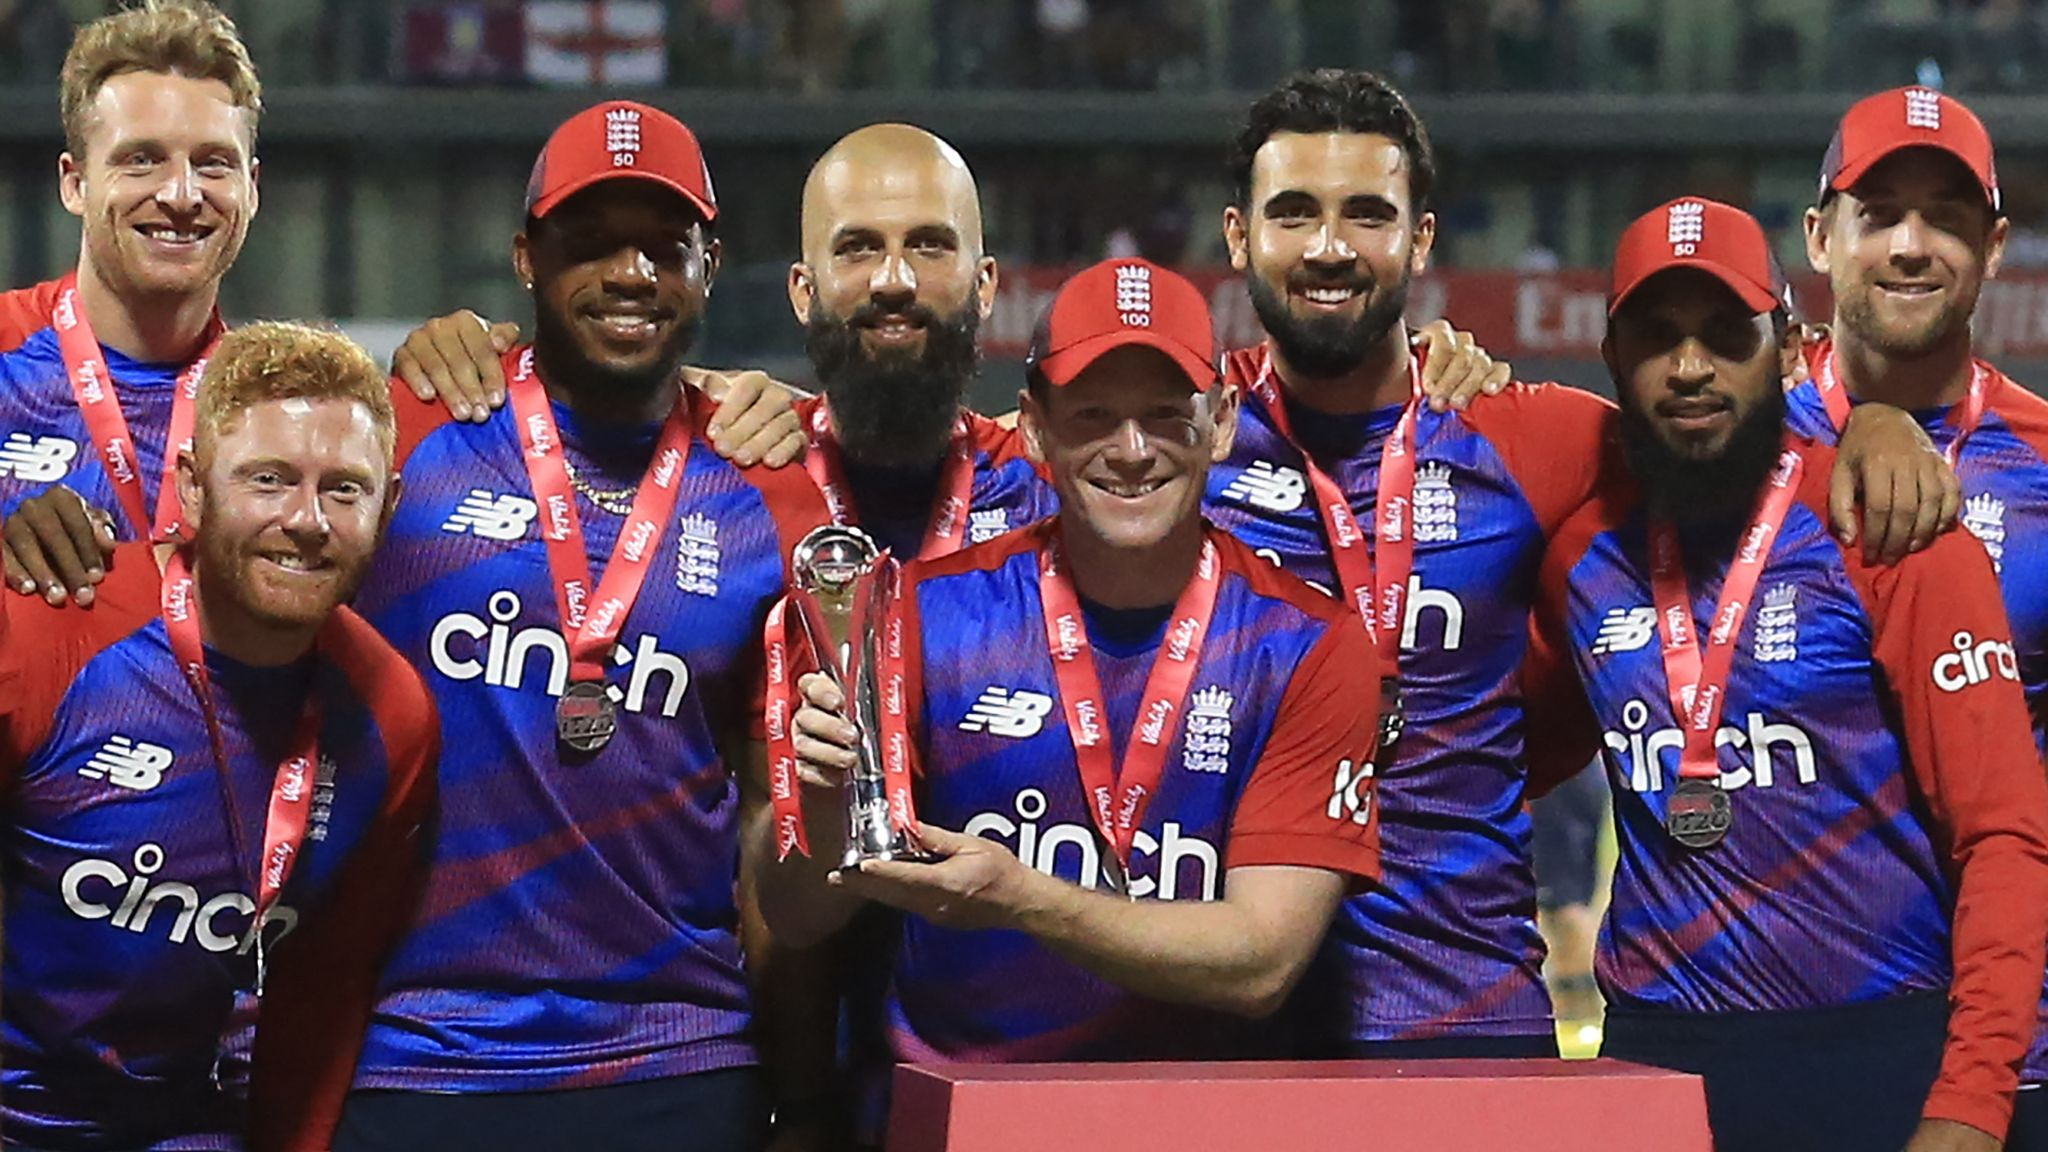 Stuart Broad thinks England will win the T20 World Cup; hails side's depth  and 'fearless' cricket   Cricket News   Sky Sports